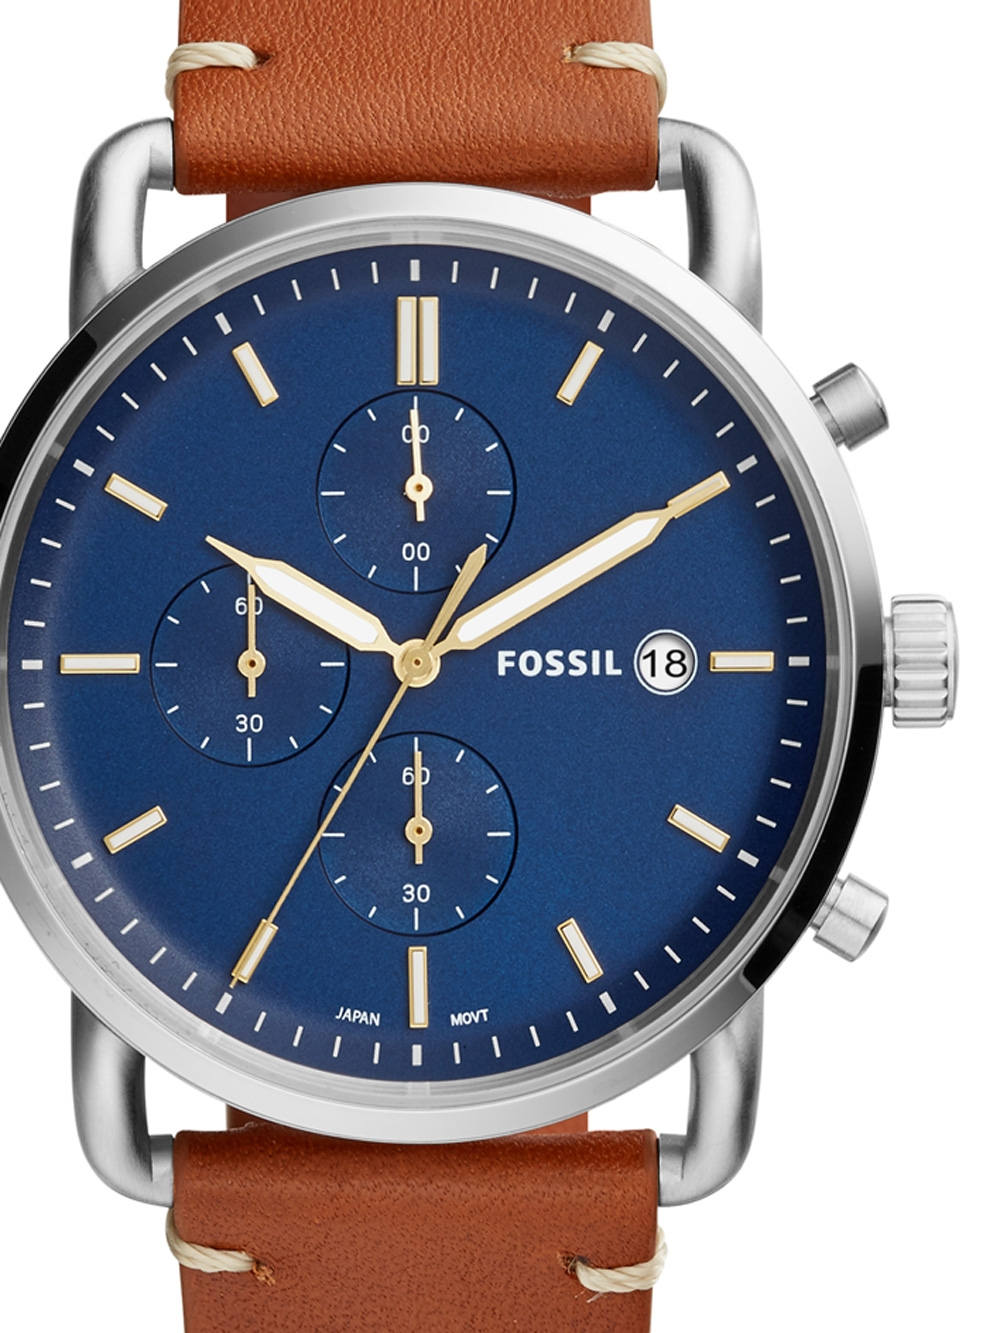 Fossil FS5401 The Commuter Chronograph 42mm 5ATM